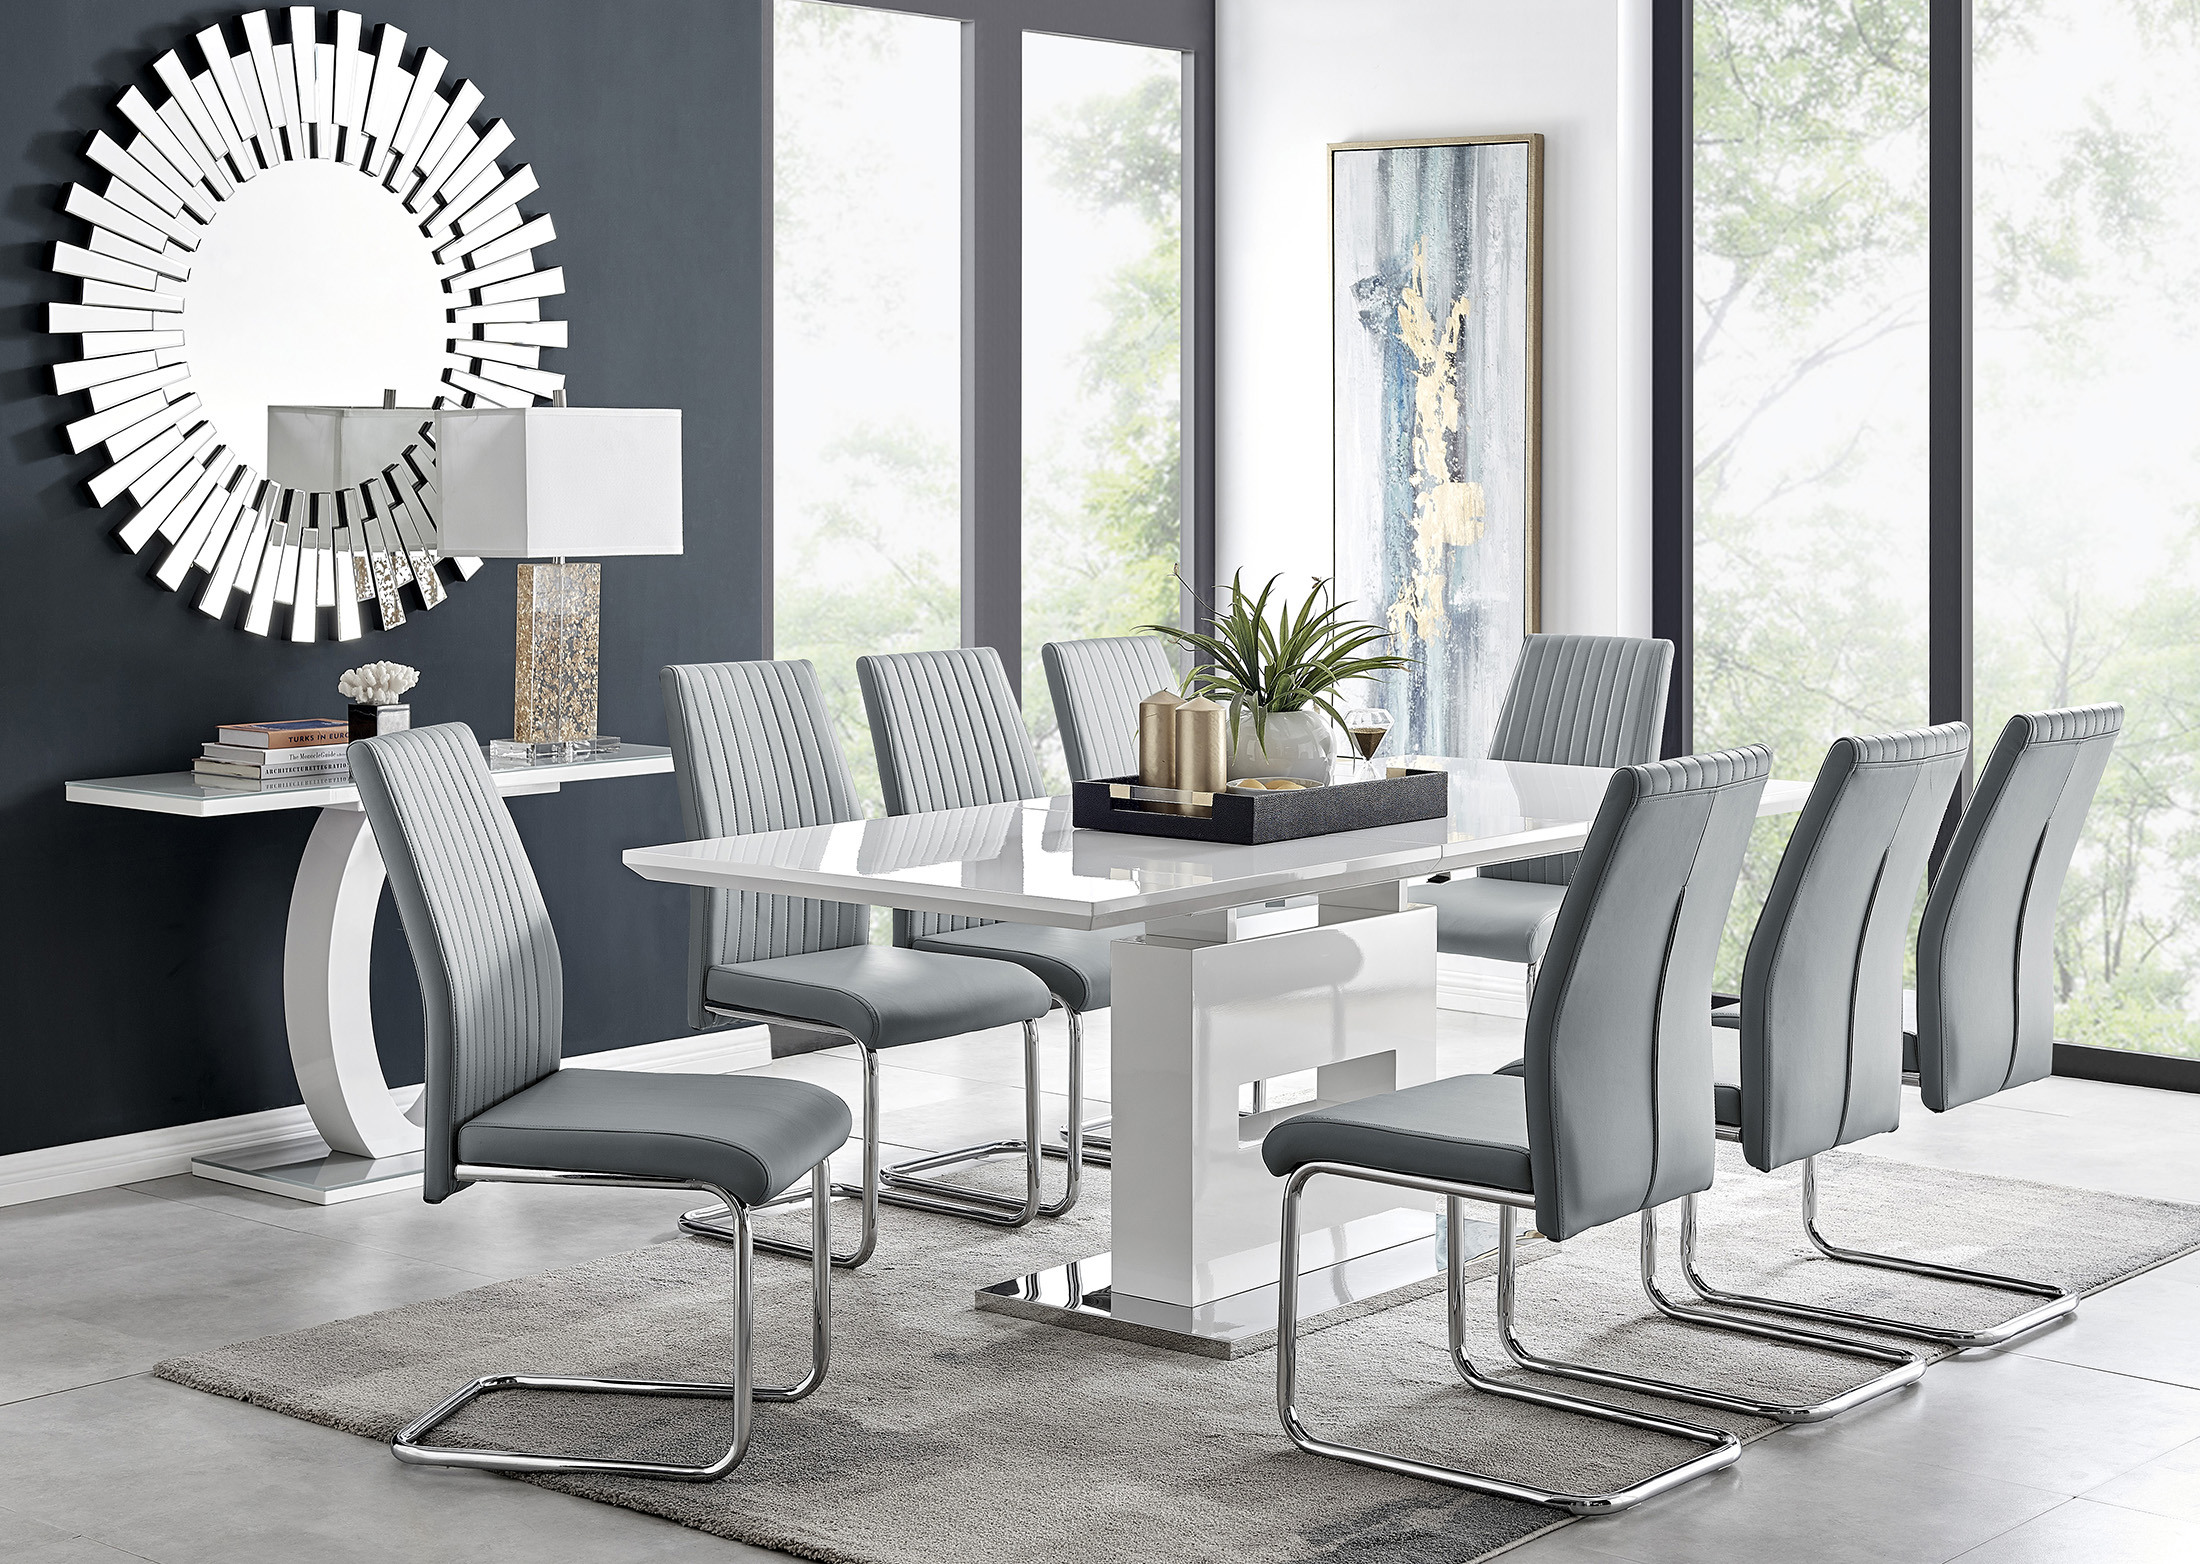 Large Extending Dining Table 8, Dining Room Table For 8